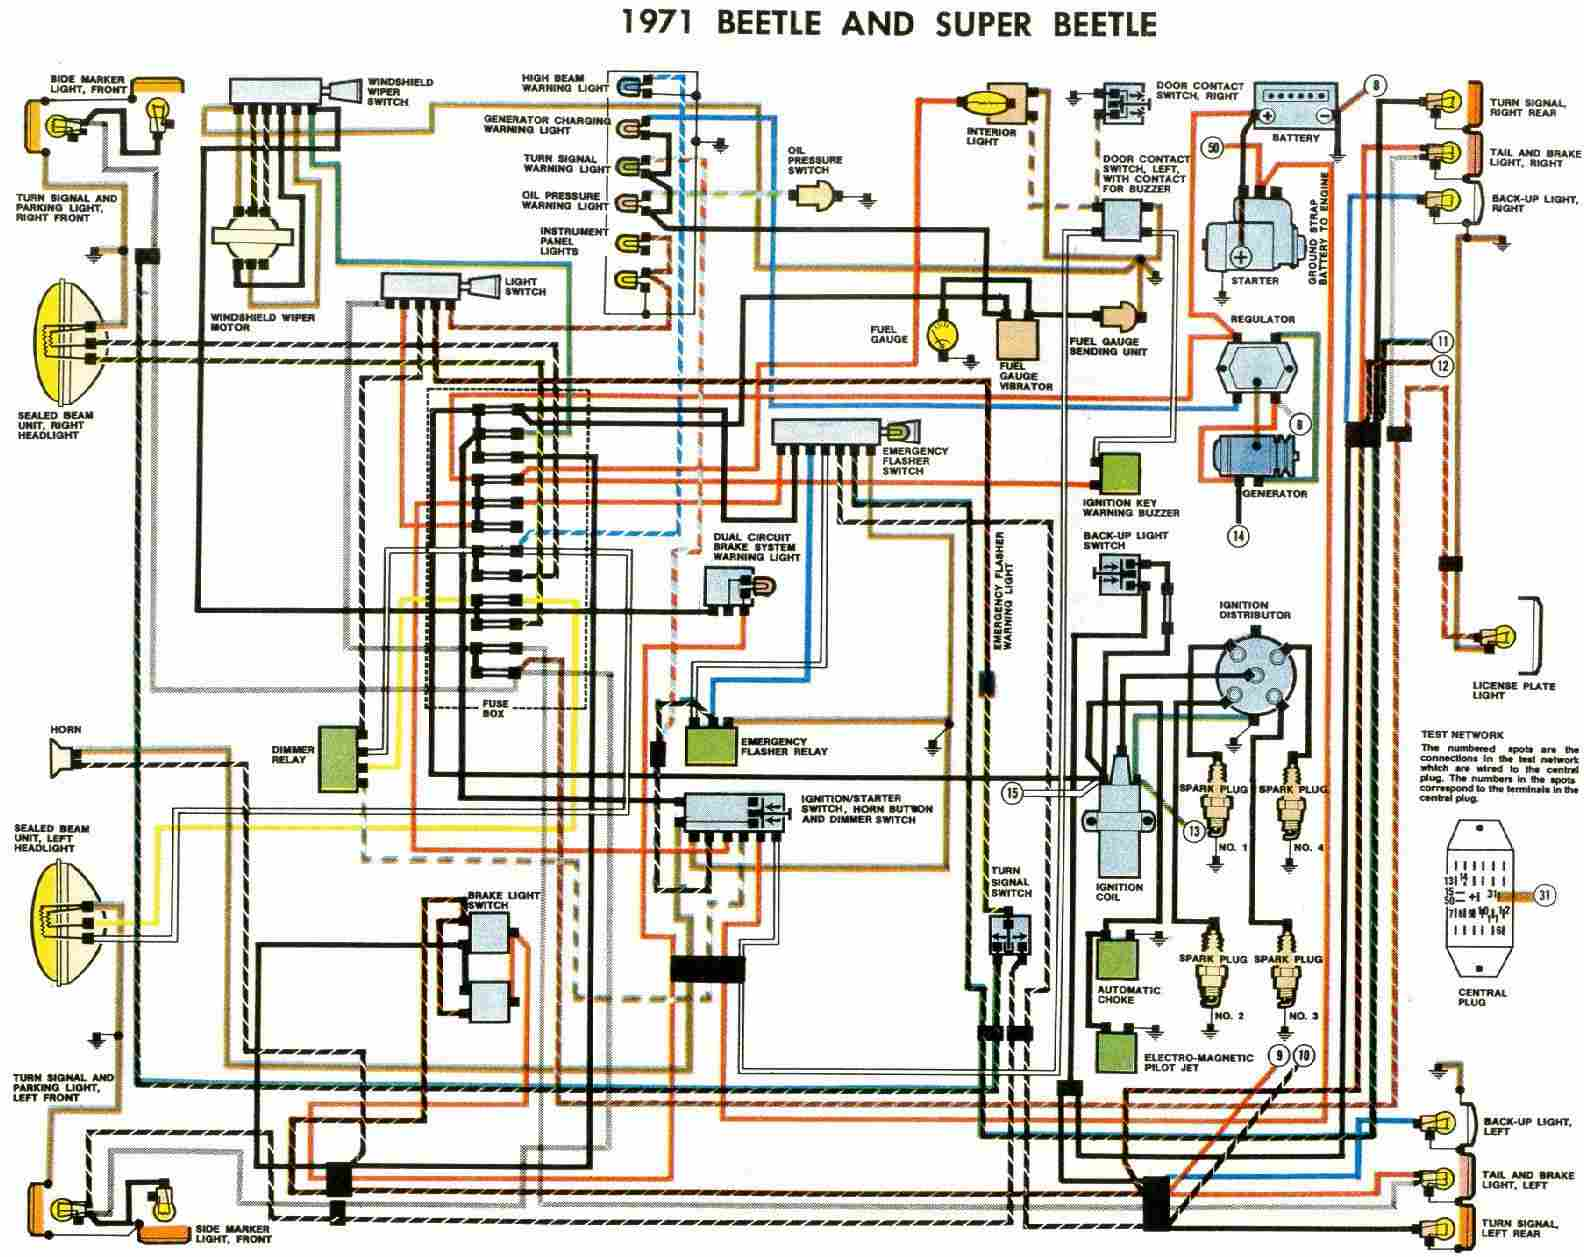 Jeep Cj7 Fuel Gauge Wiring Diagram Schematic Simple Guide About 2013 Fleetwood Bounder Diagrams Vw Beetle And Super 1971 Electrical